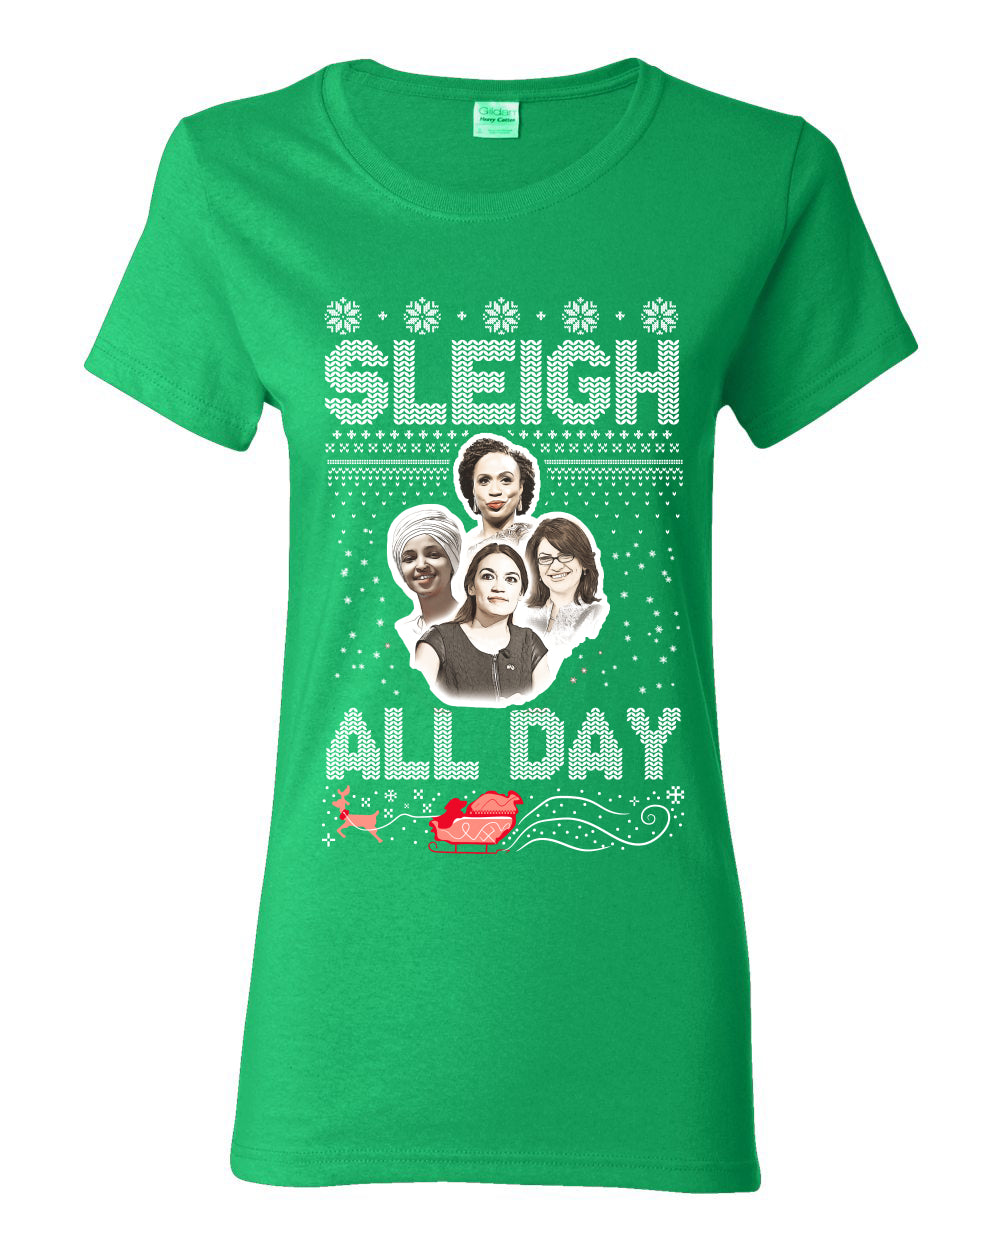 AOC The Squad Congresswomen Sleigh All Day Xmas Ugly Christmas Sweater Womens Graphic T-Shirt